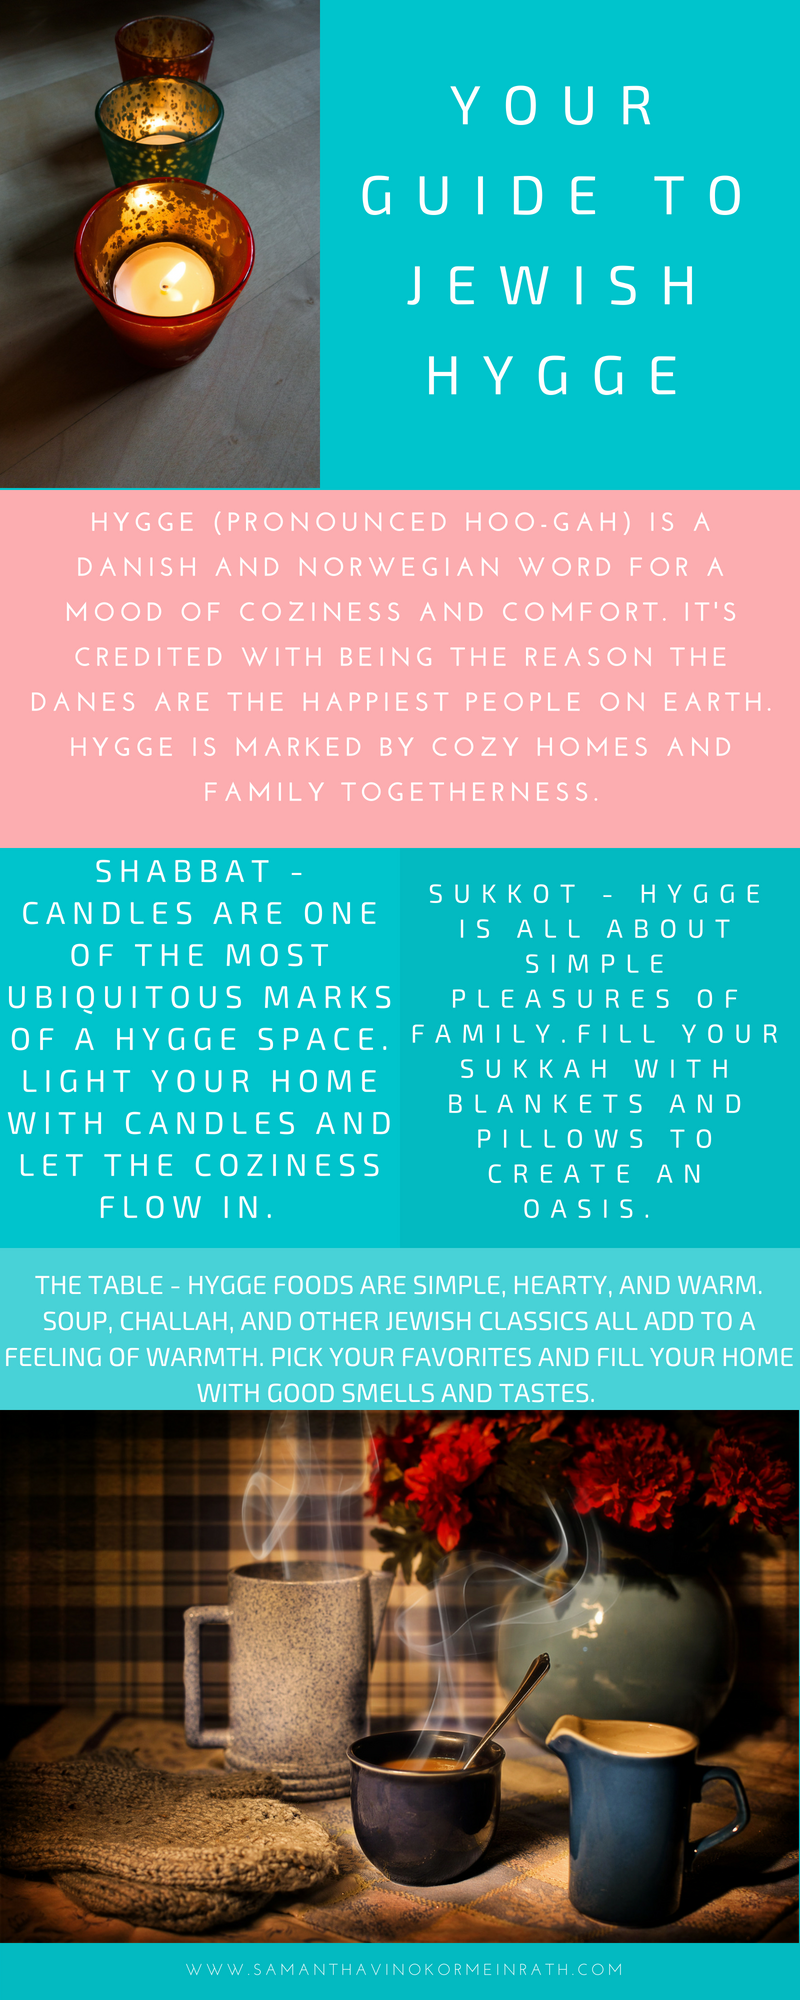 Guide to Jewish Hygge